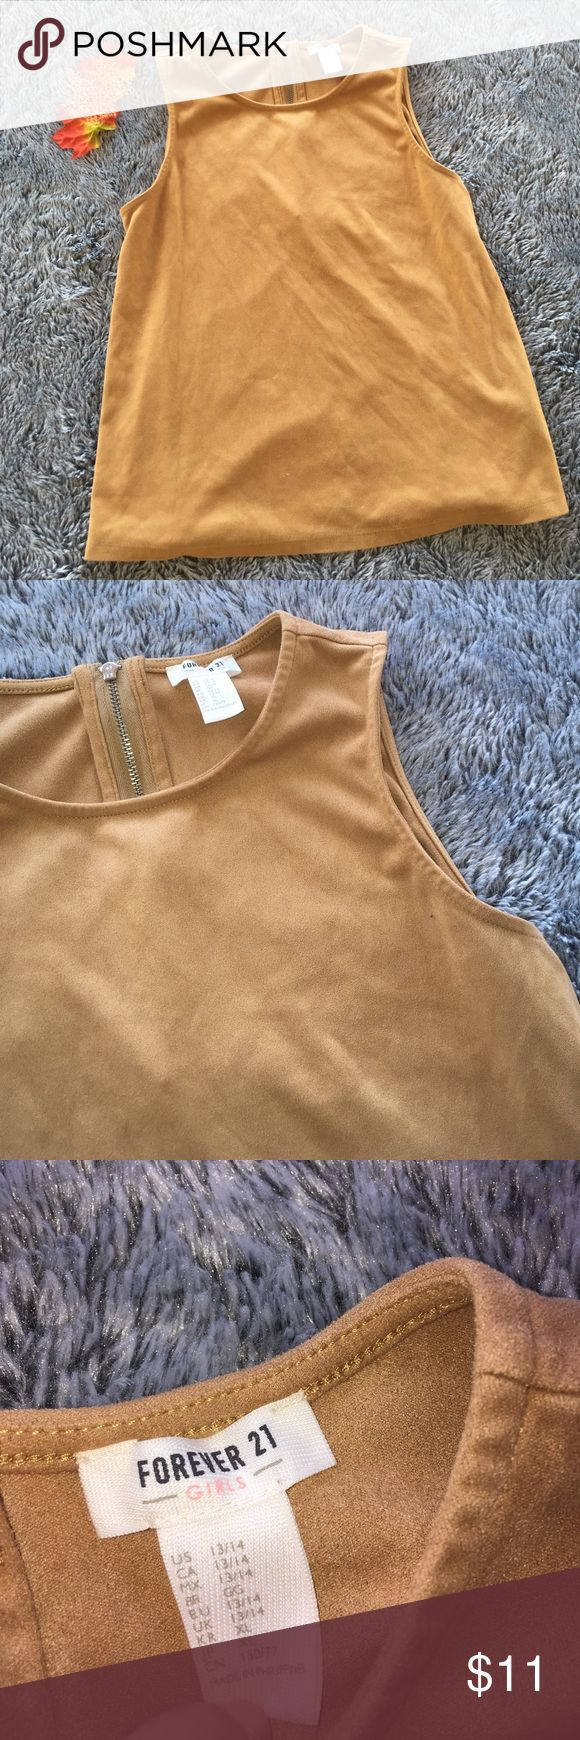 Fall Tops Forever. 21 Girls top perfect for the fall and is in perfect condition. Forever 21 Tops